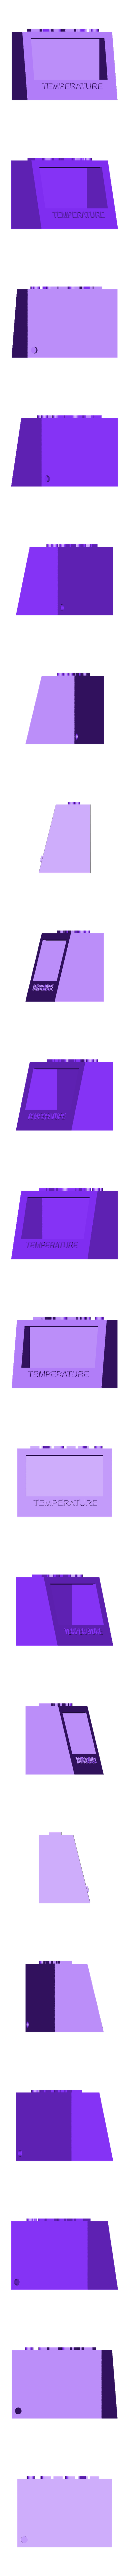 CASE_TEMPERATURE_v1_v1.stl Download free STL file Thermometer case ender 3 - ikea enclosure • 3D printer object, Akegl2